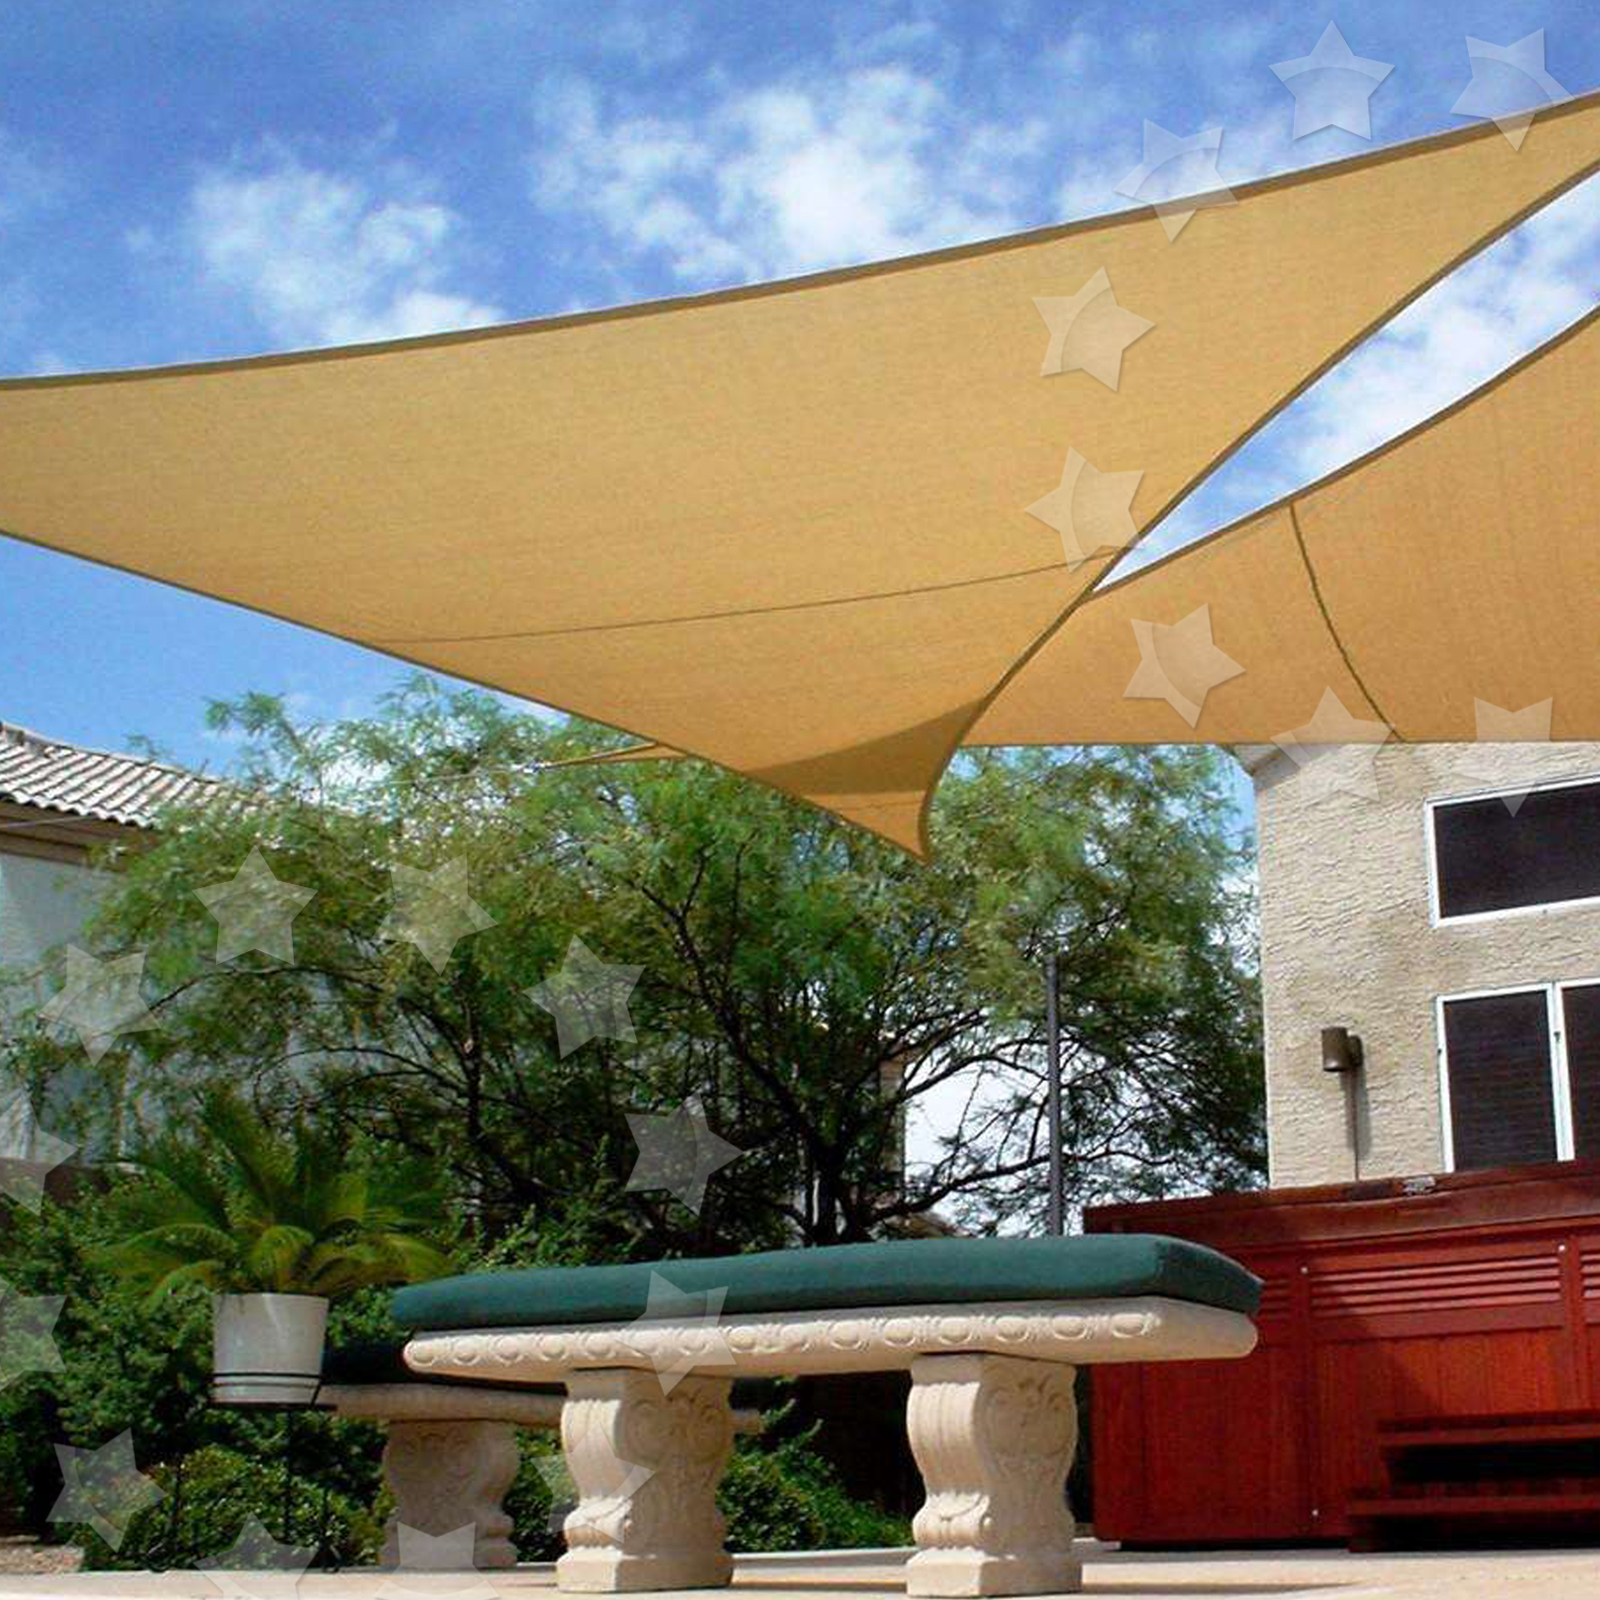 Sun Shade Sail Patio Garden Awning Sunscreen Canopy 98% UV